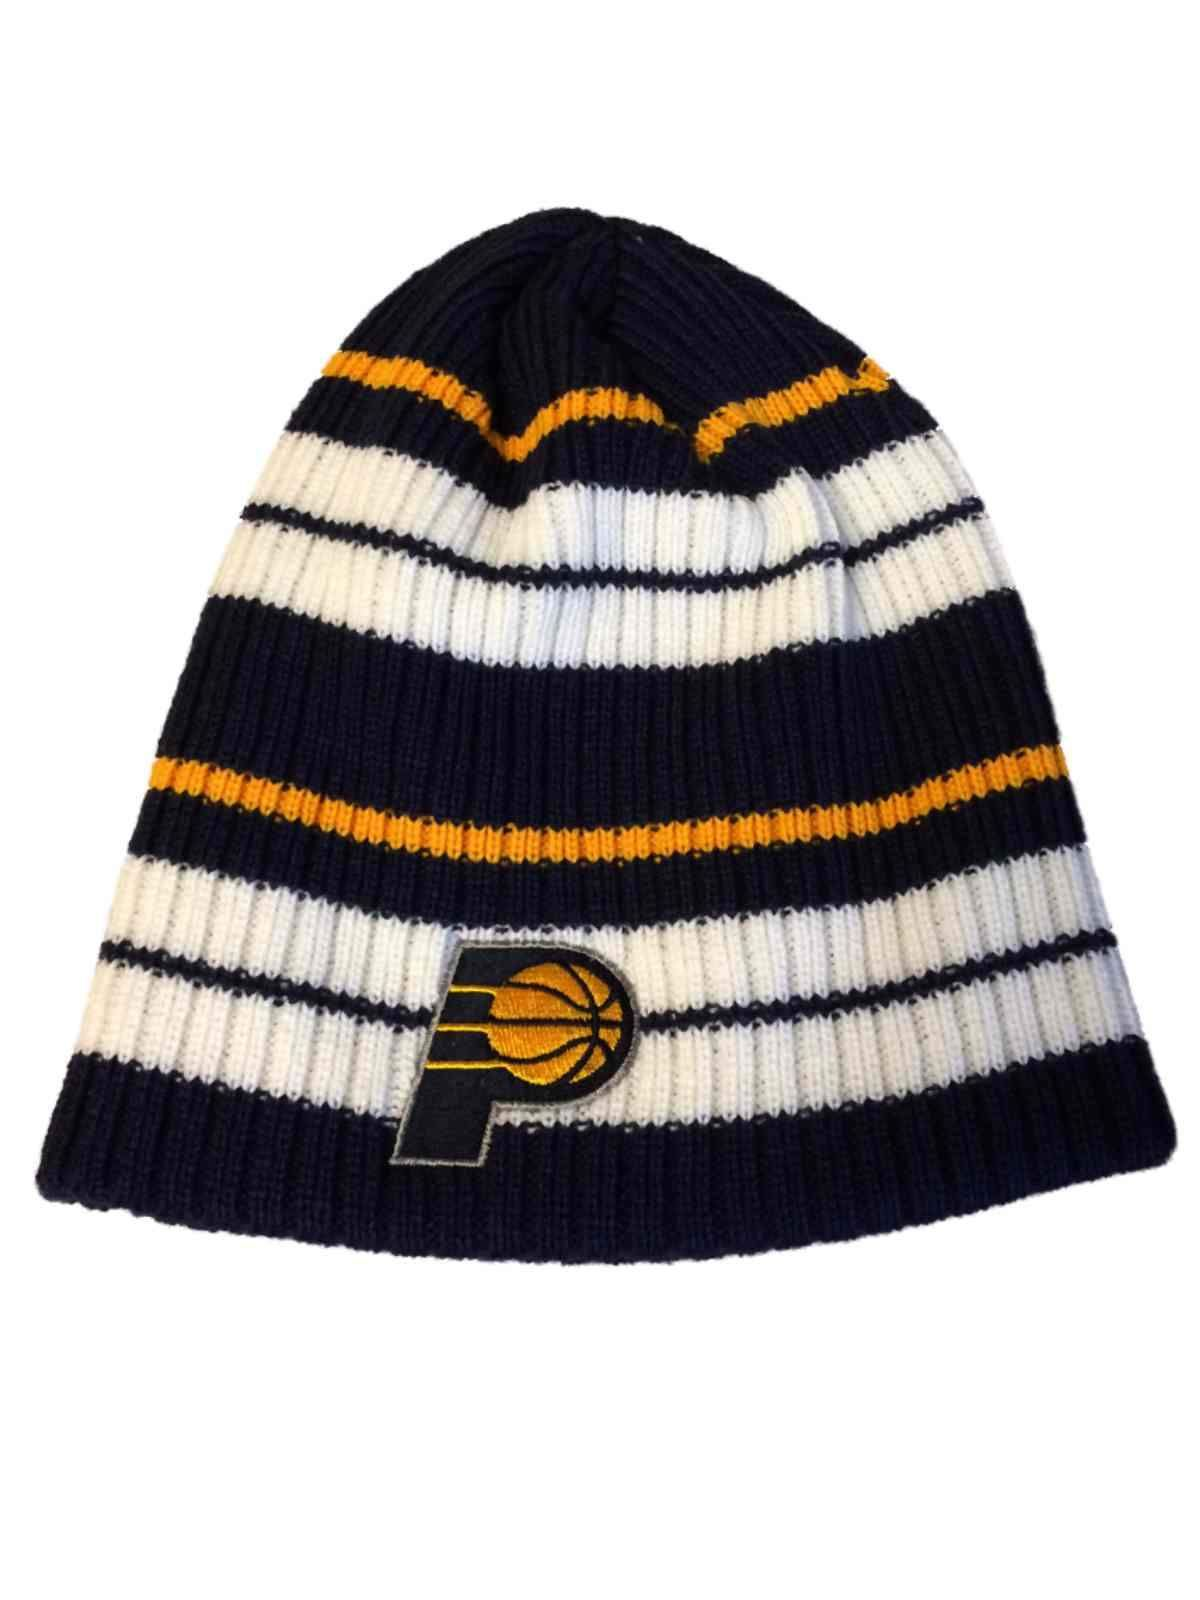 super popular 504c5 daecd ... where can i buy indiana pacers adidas navy white yellow striped acrylic knit  beanie hat cap